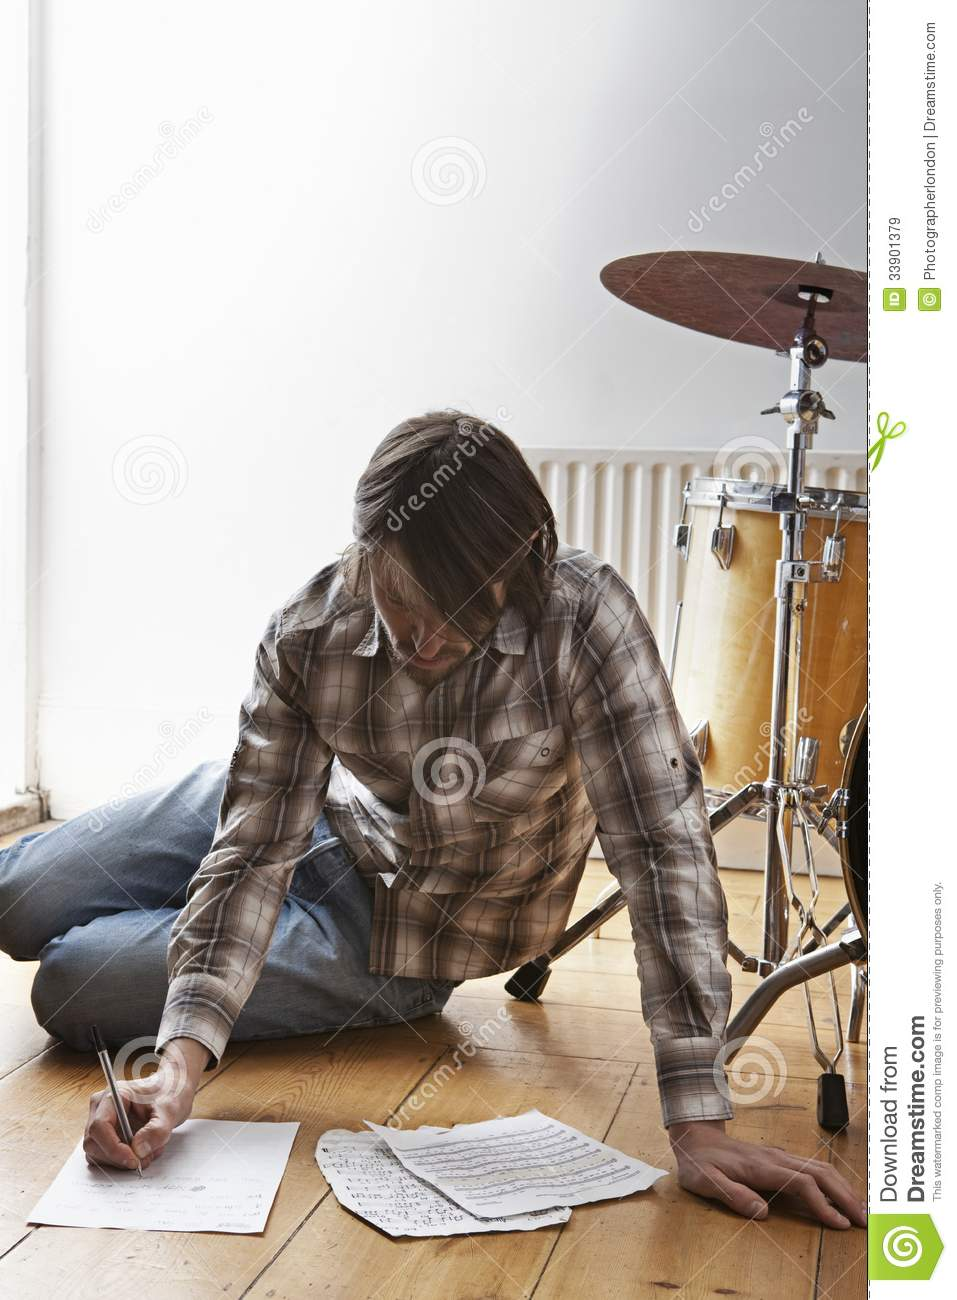 Homme PAR le tambour Kit Writing Music On Floor